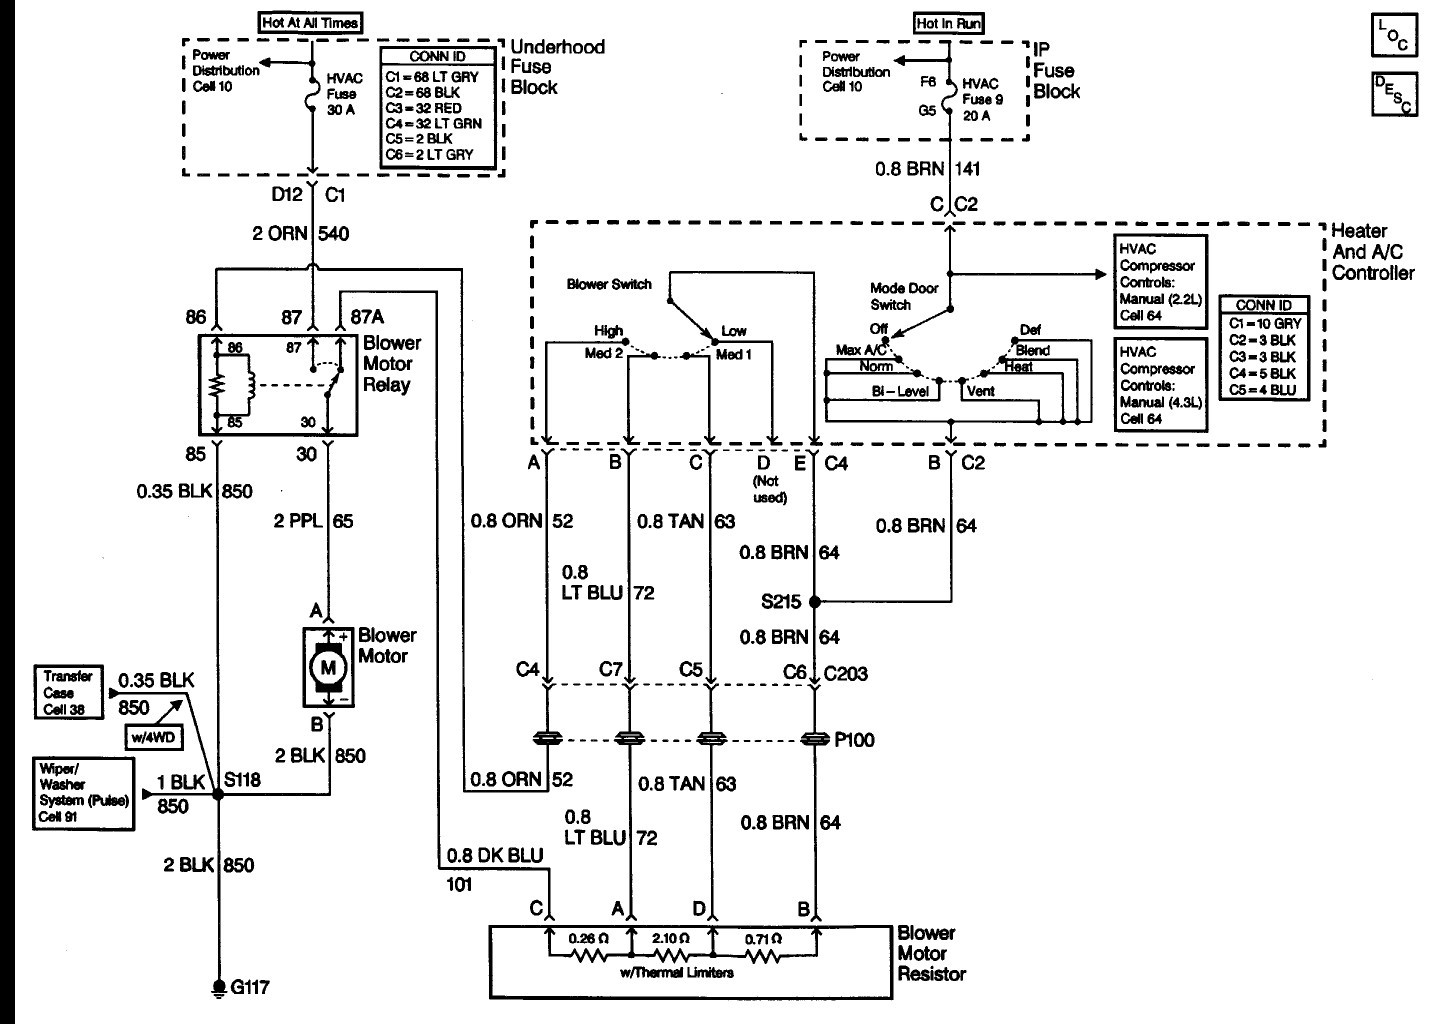 Blower Motor Wiring Diagram Inspirational 4 Speed Blower Motor Wiring Diagram Fitfathers